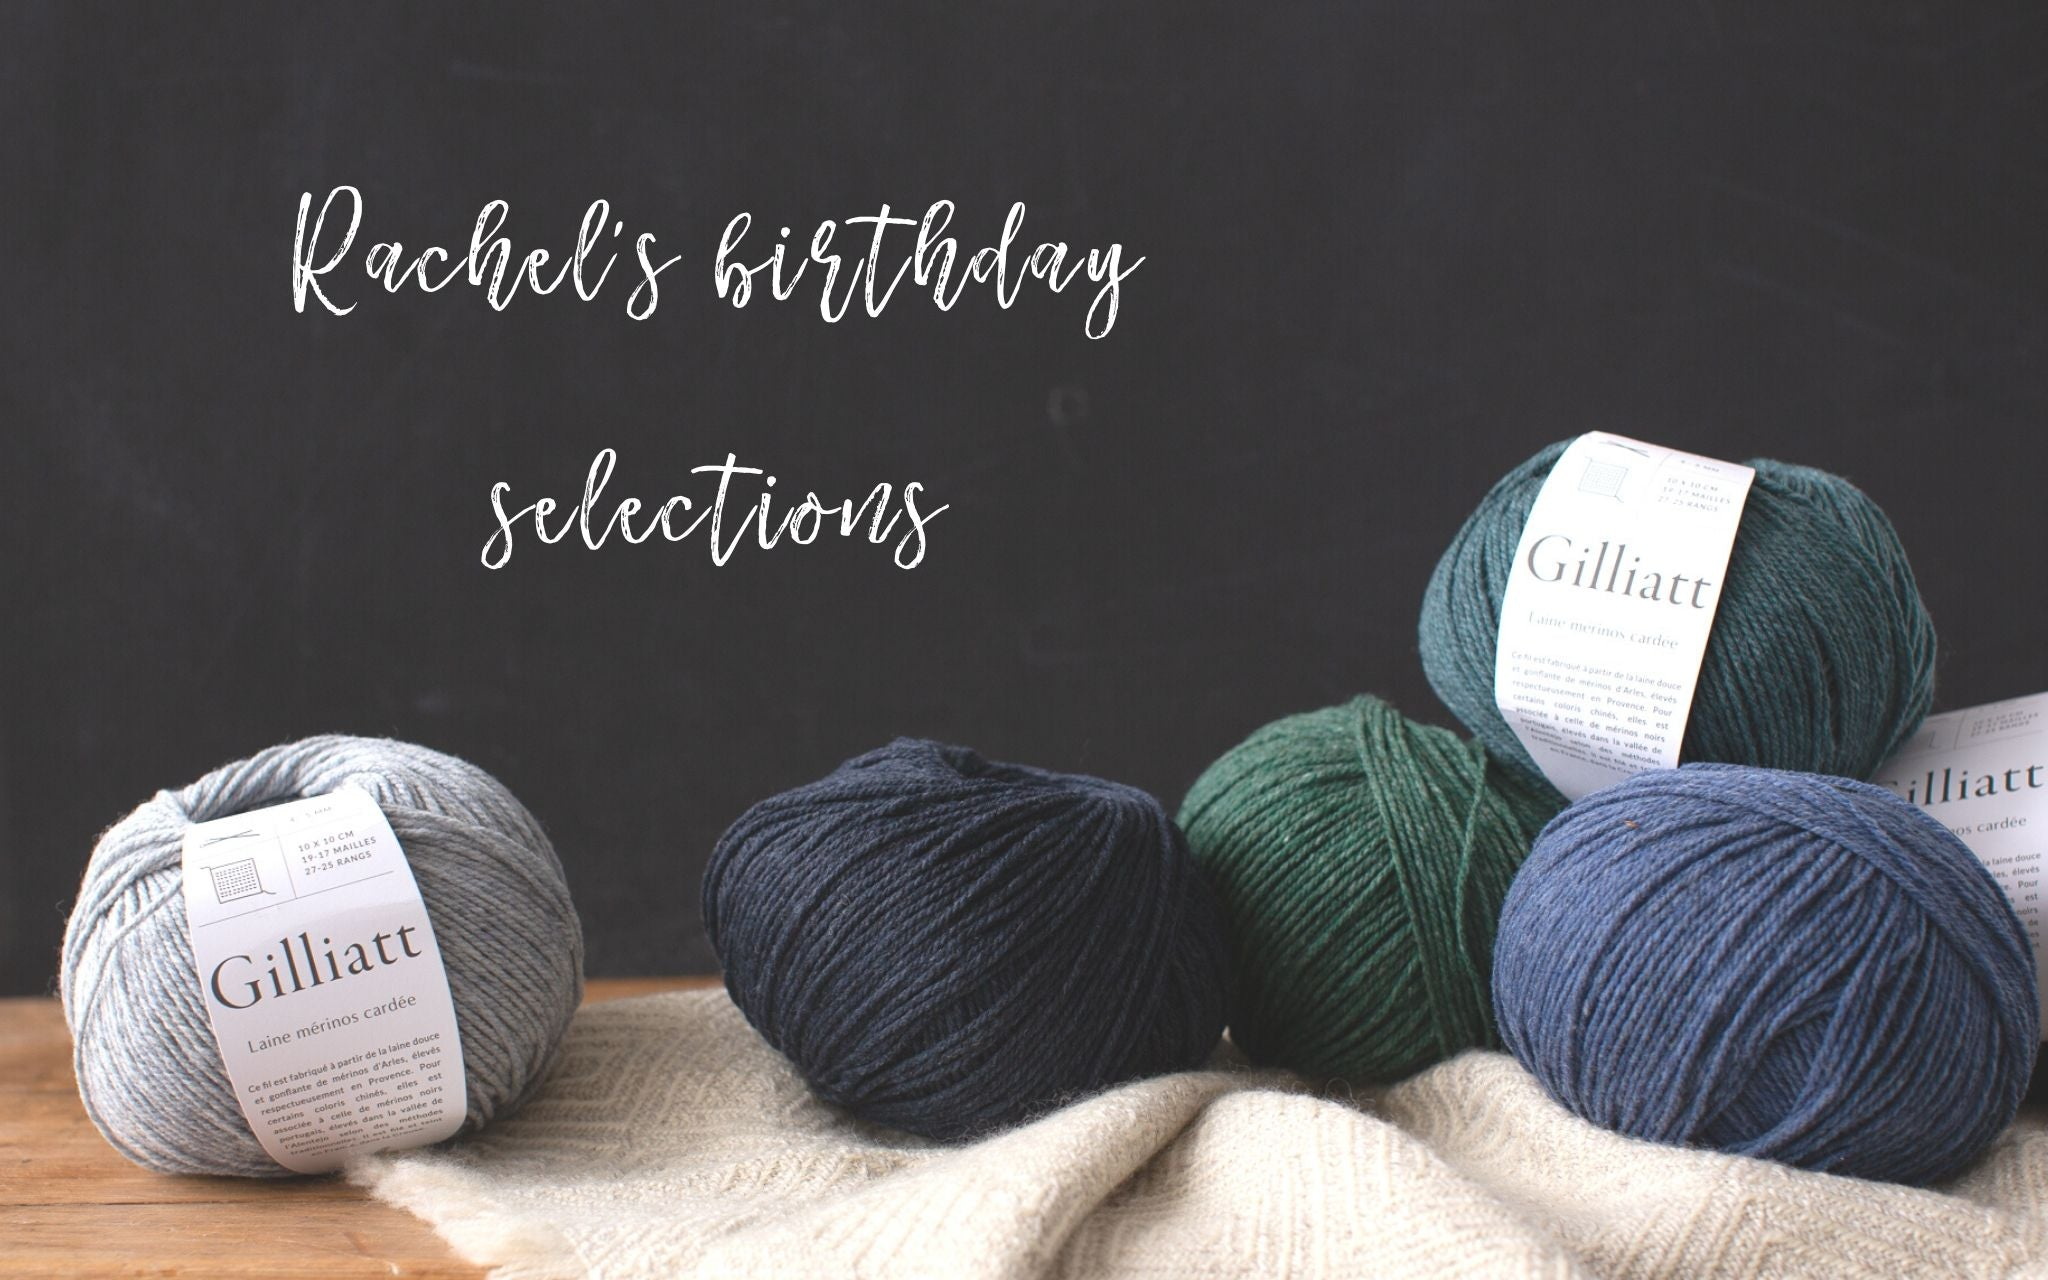 White text on black chalkboard back ground 'Rachel's birthday selections' overflowing basket of balls of yarn on a wooden table.